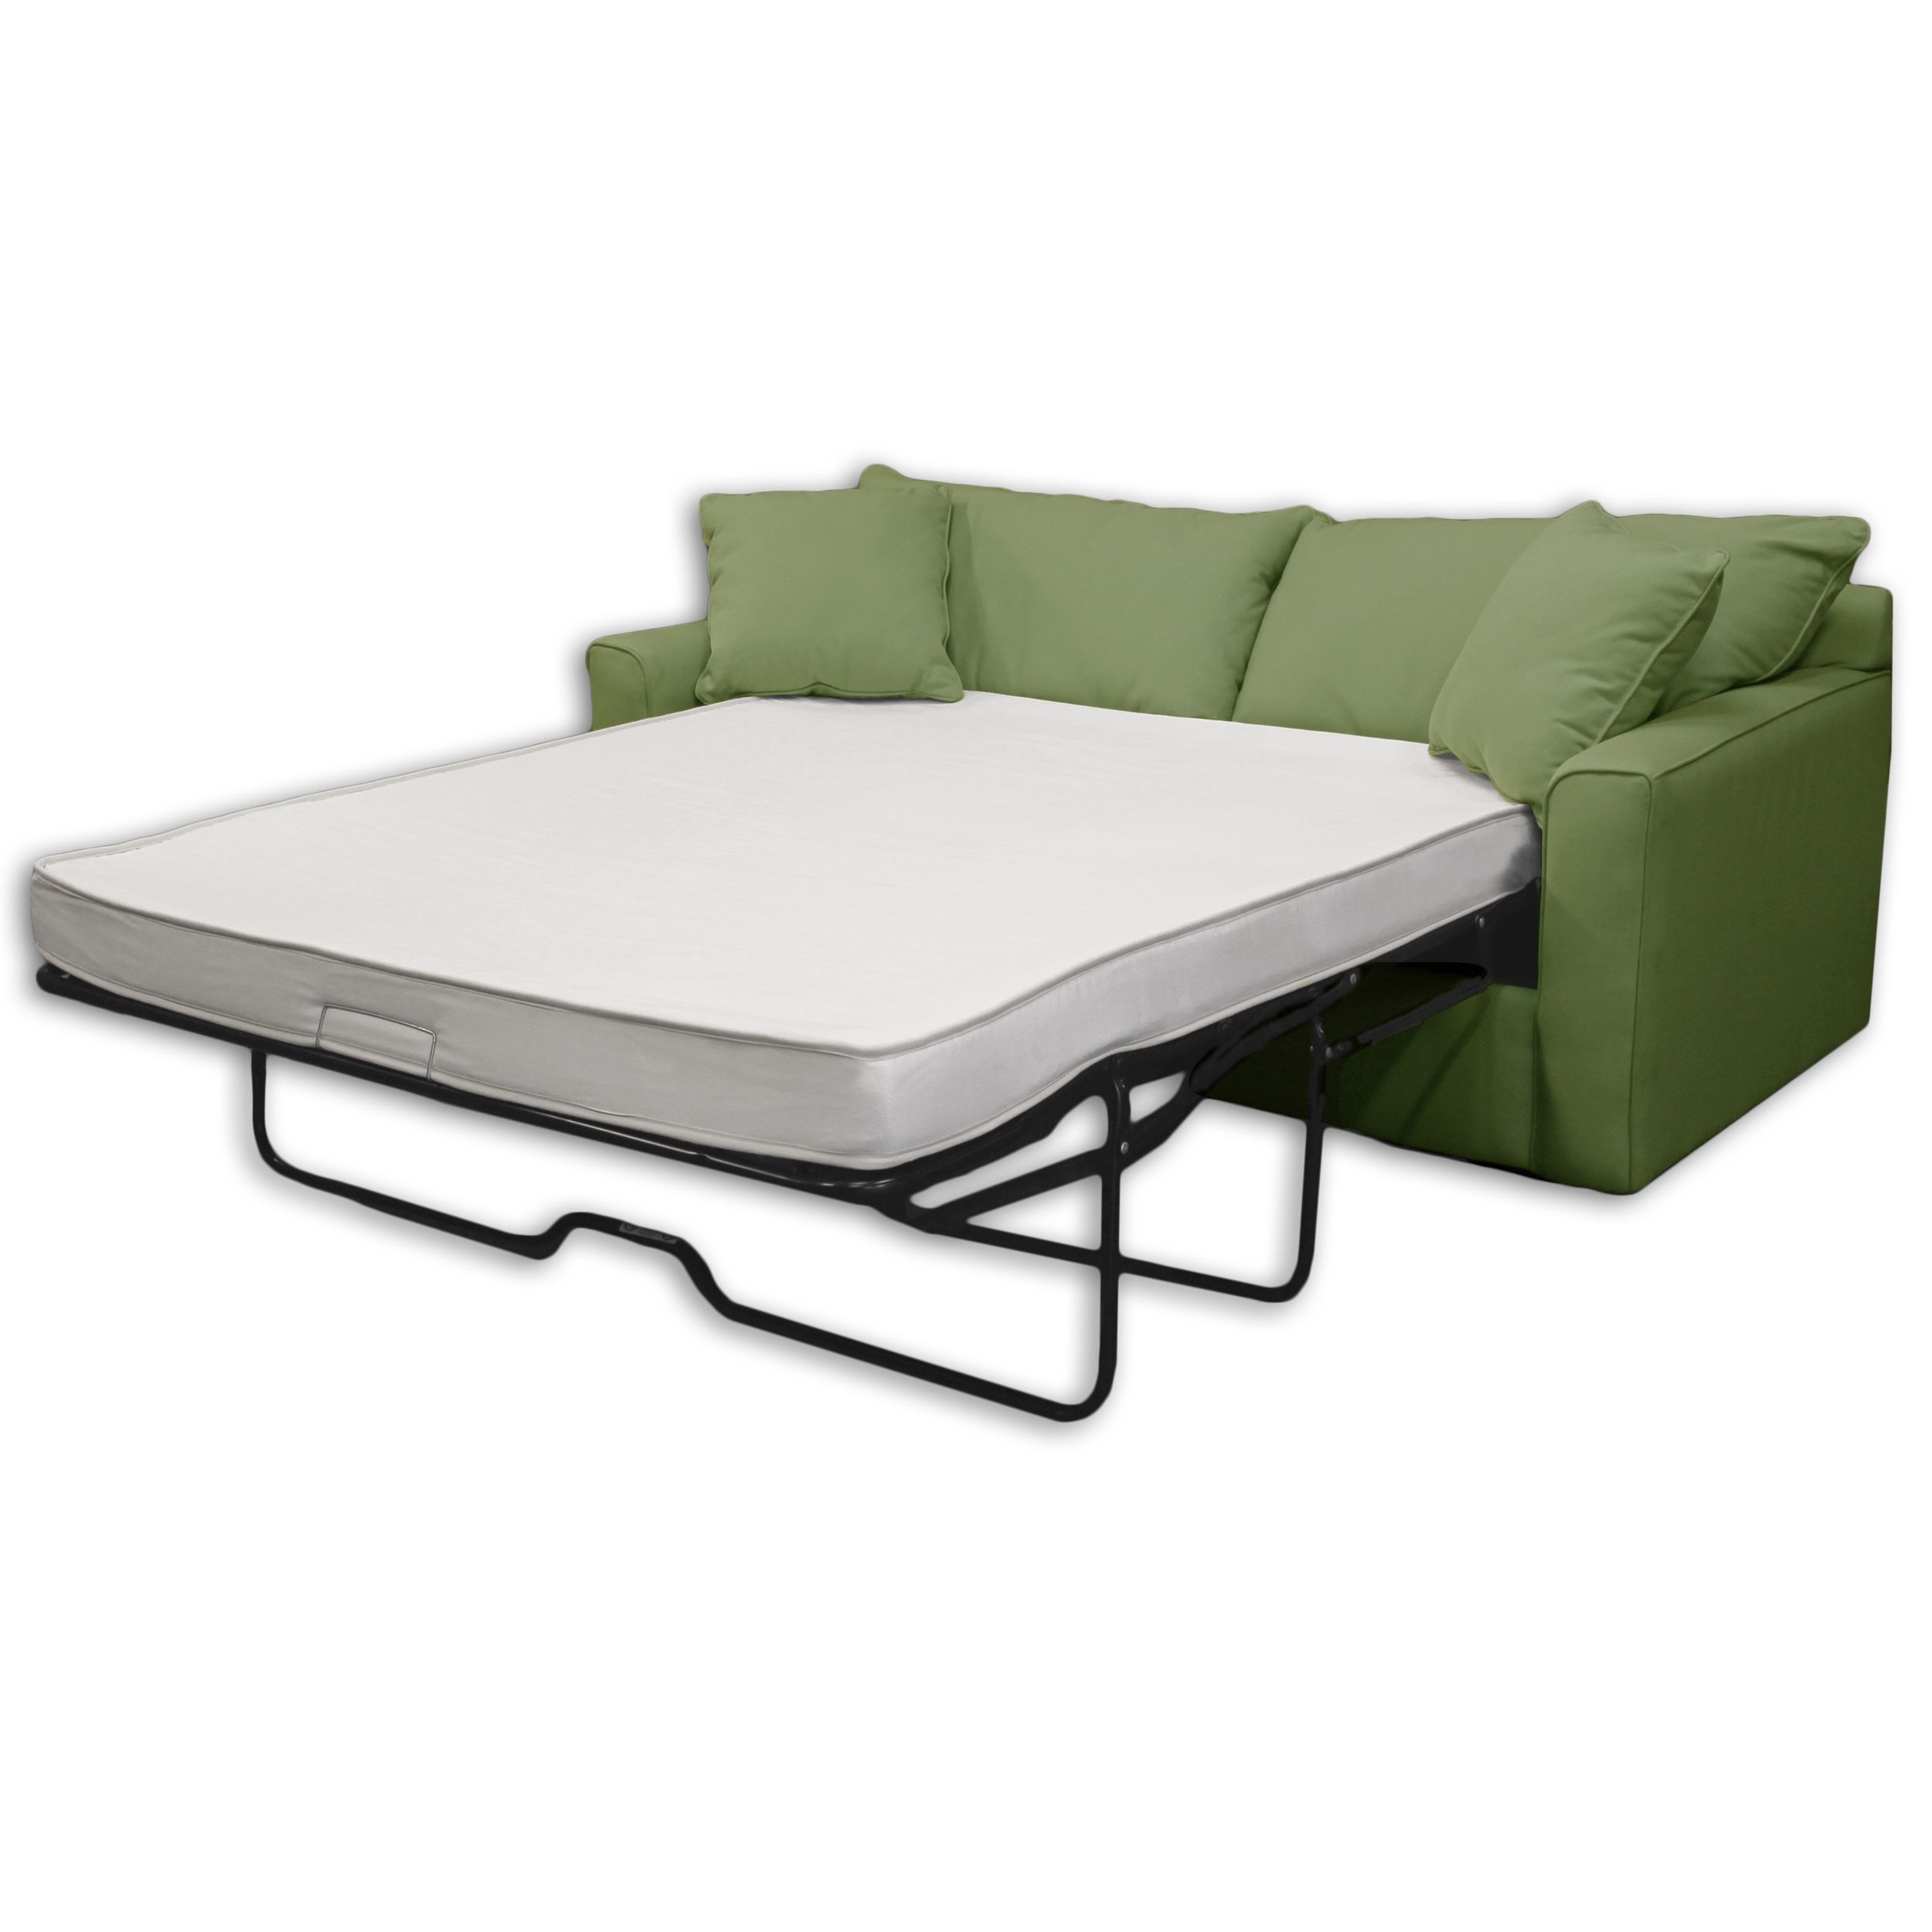 This reversible foam sleep sofa bed mattress is made of 4 inch